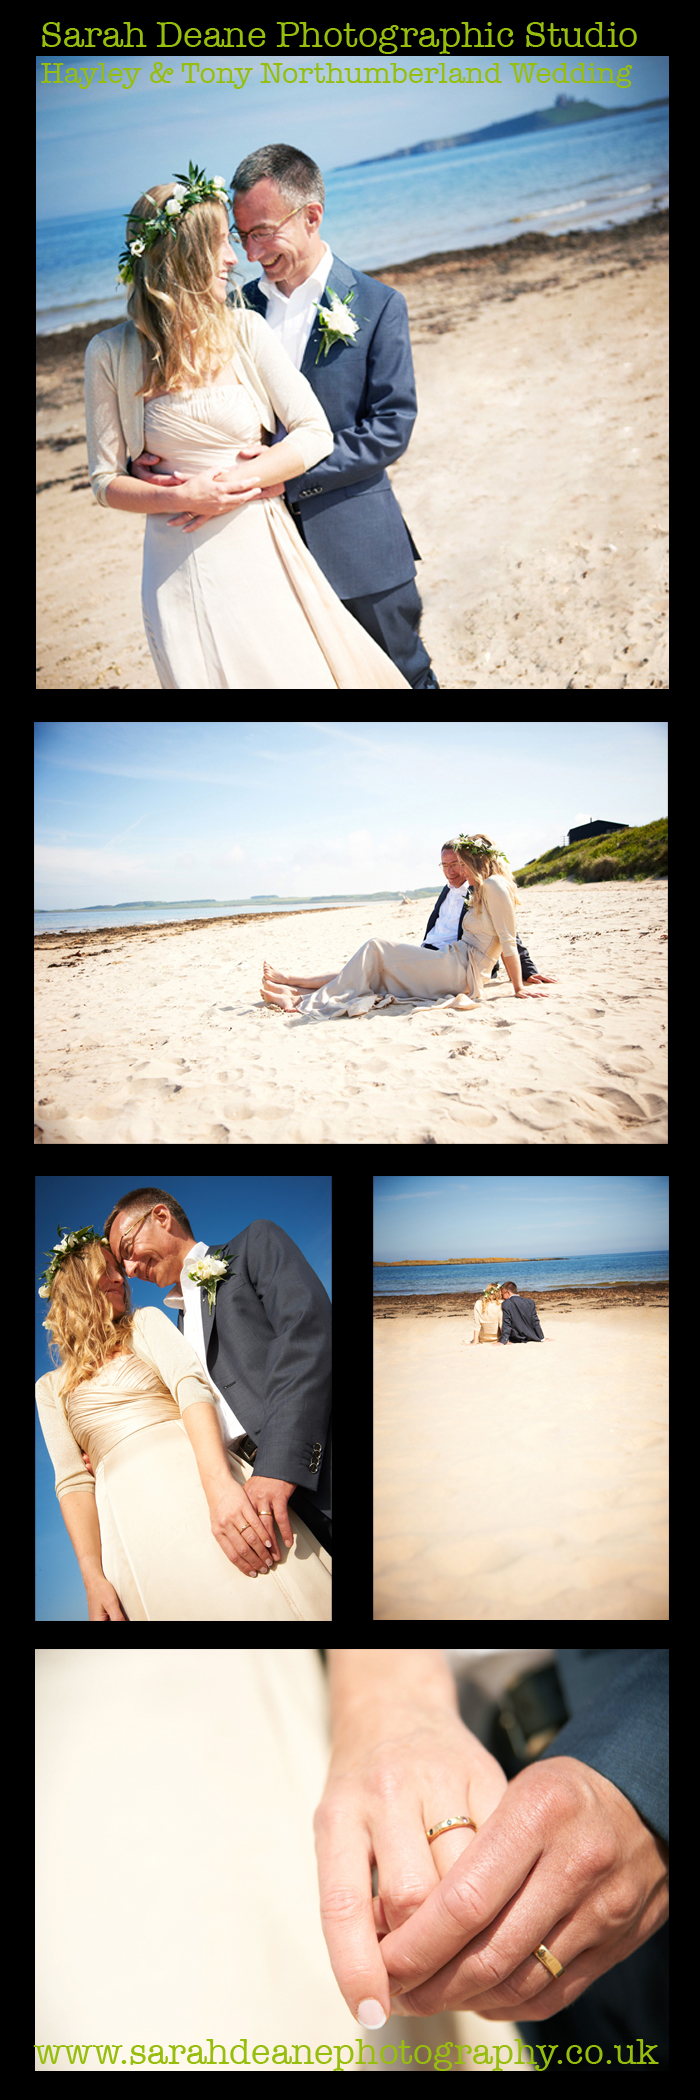 hayley and tony wedding embleton bay northumberland 2